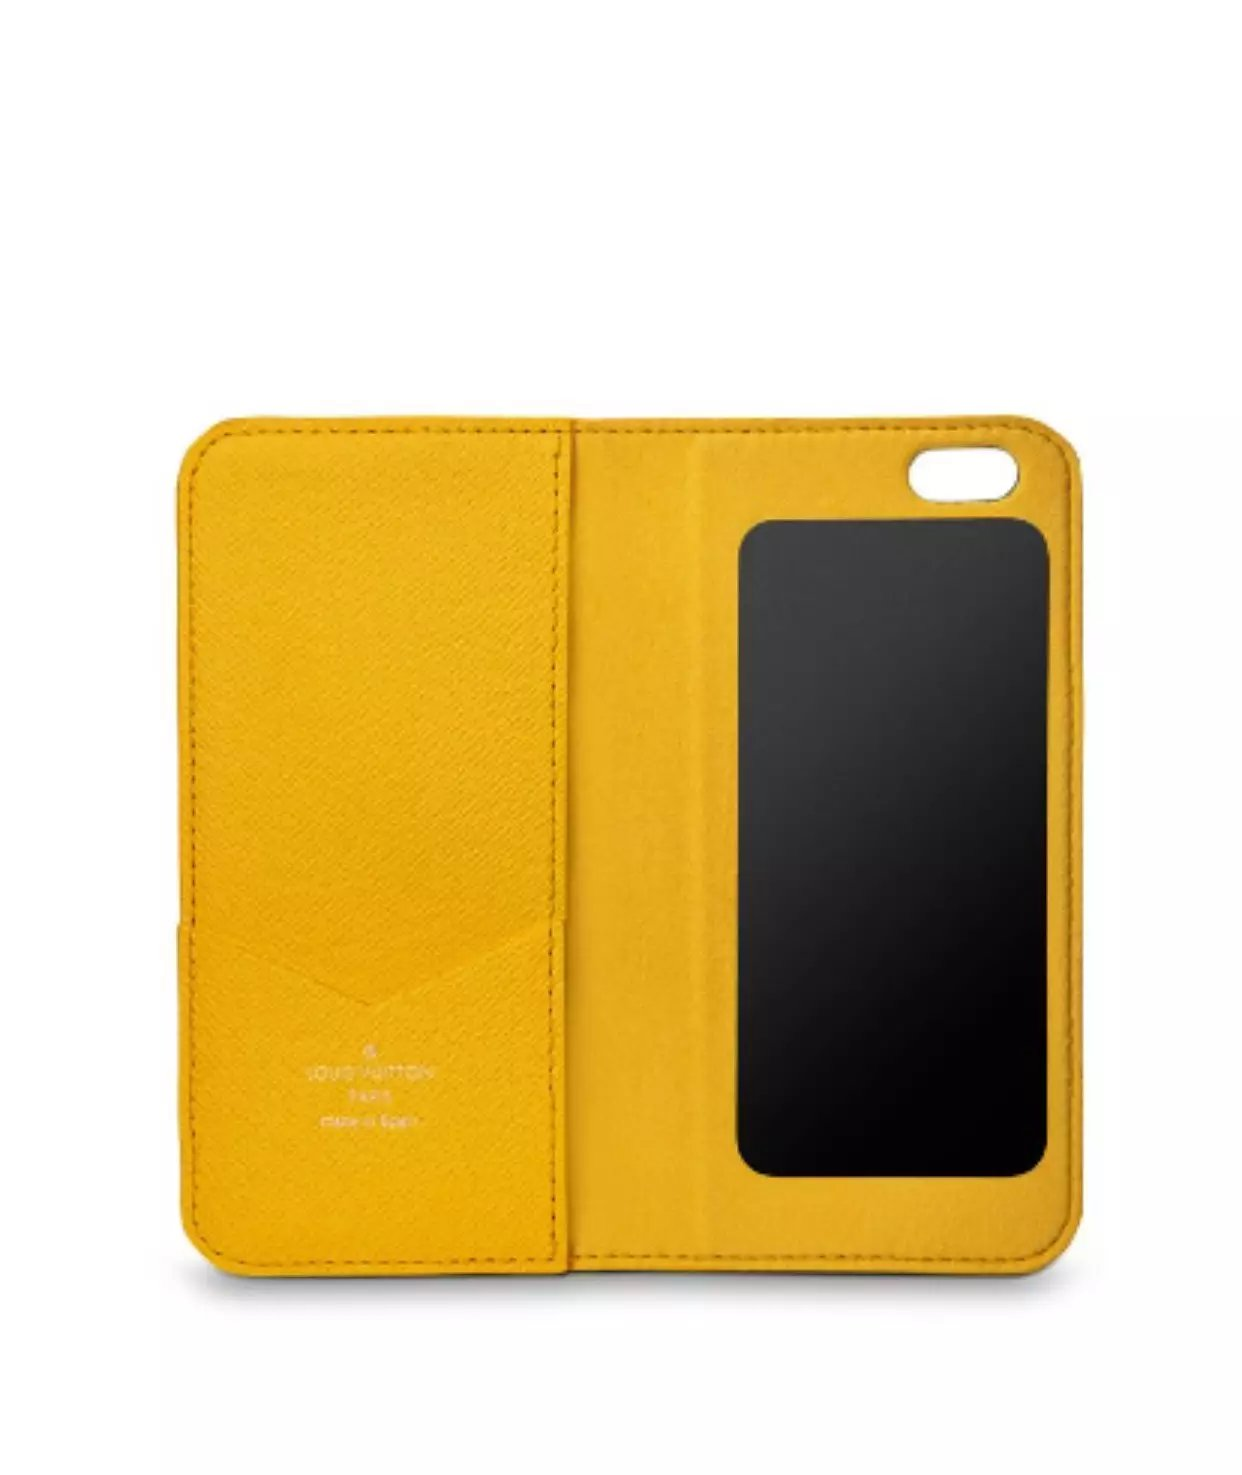 filzhülle iphone iphone handyhülle Louis Vuitton iphone 8 Plus hüllen tasche 8 Pluslbst designen apple iphone 8 Plus hülle iphone 8 Plus weiß iphone 8 Plus goldene hülle handy ca8 Plus mit eigenem foto iphone hülle schwarz